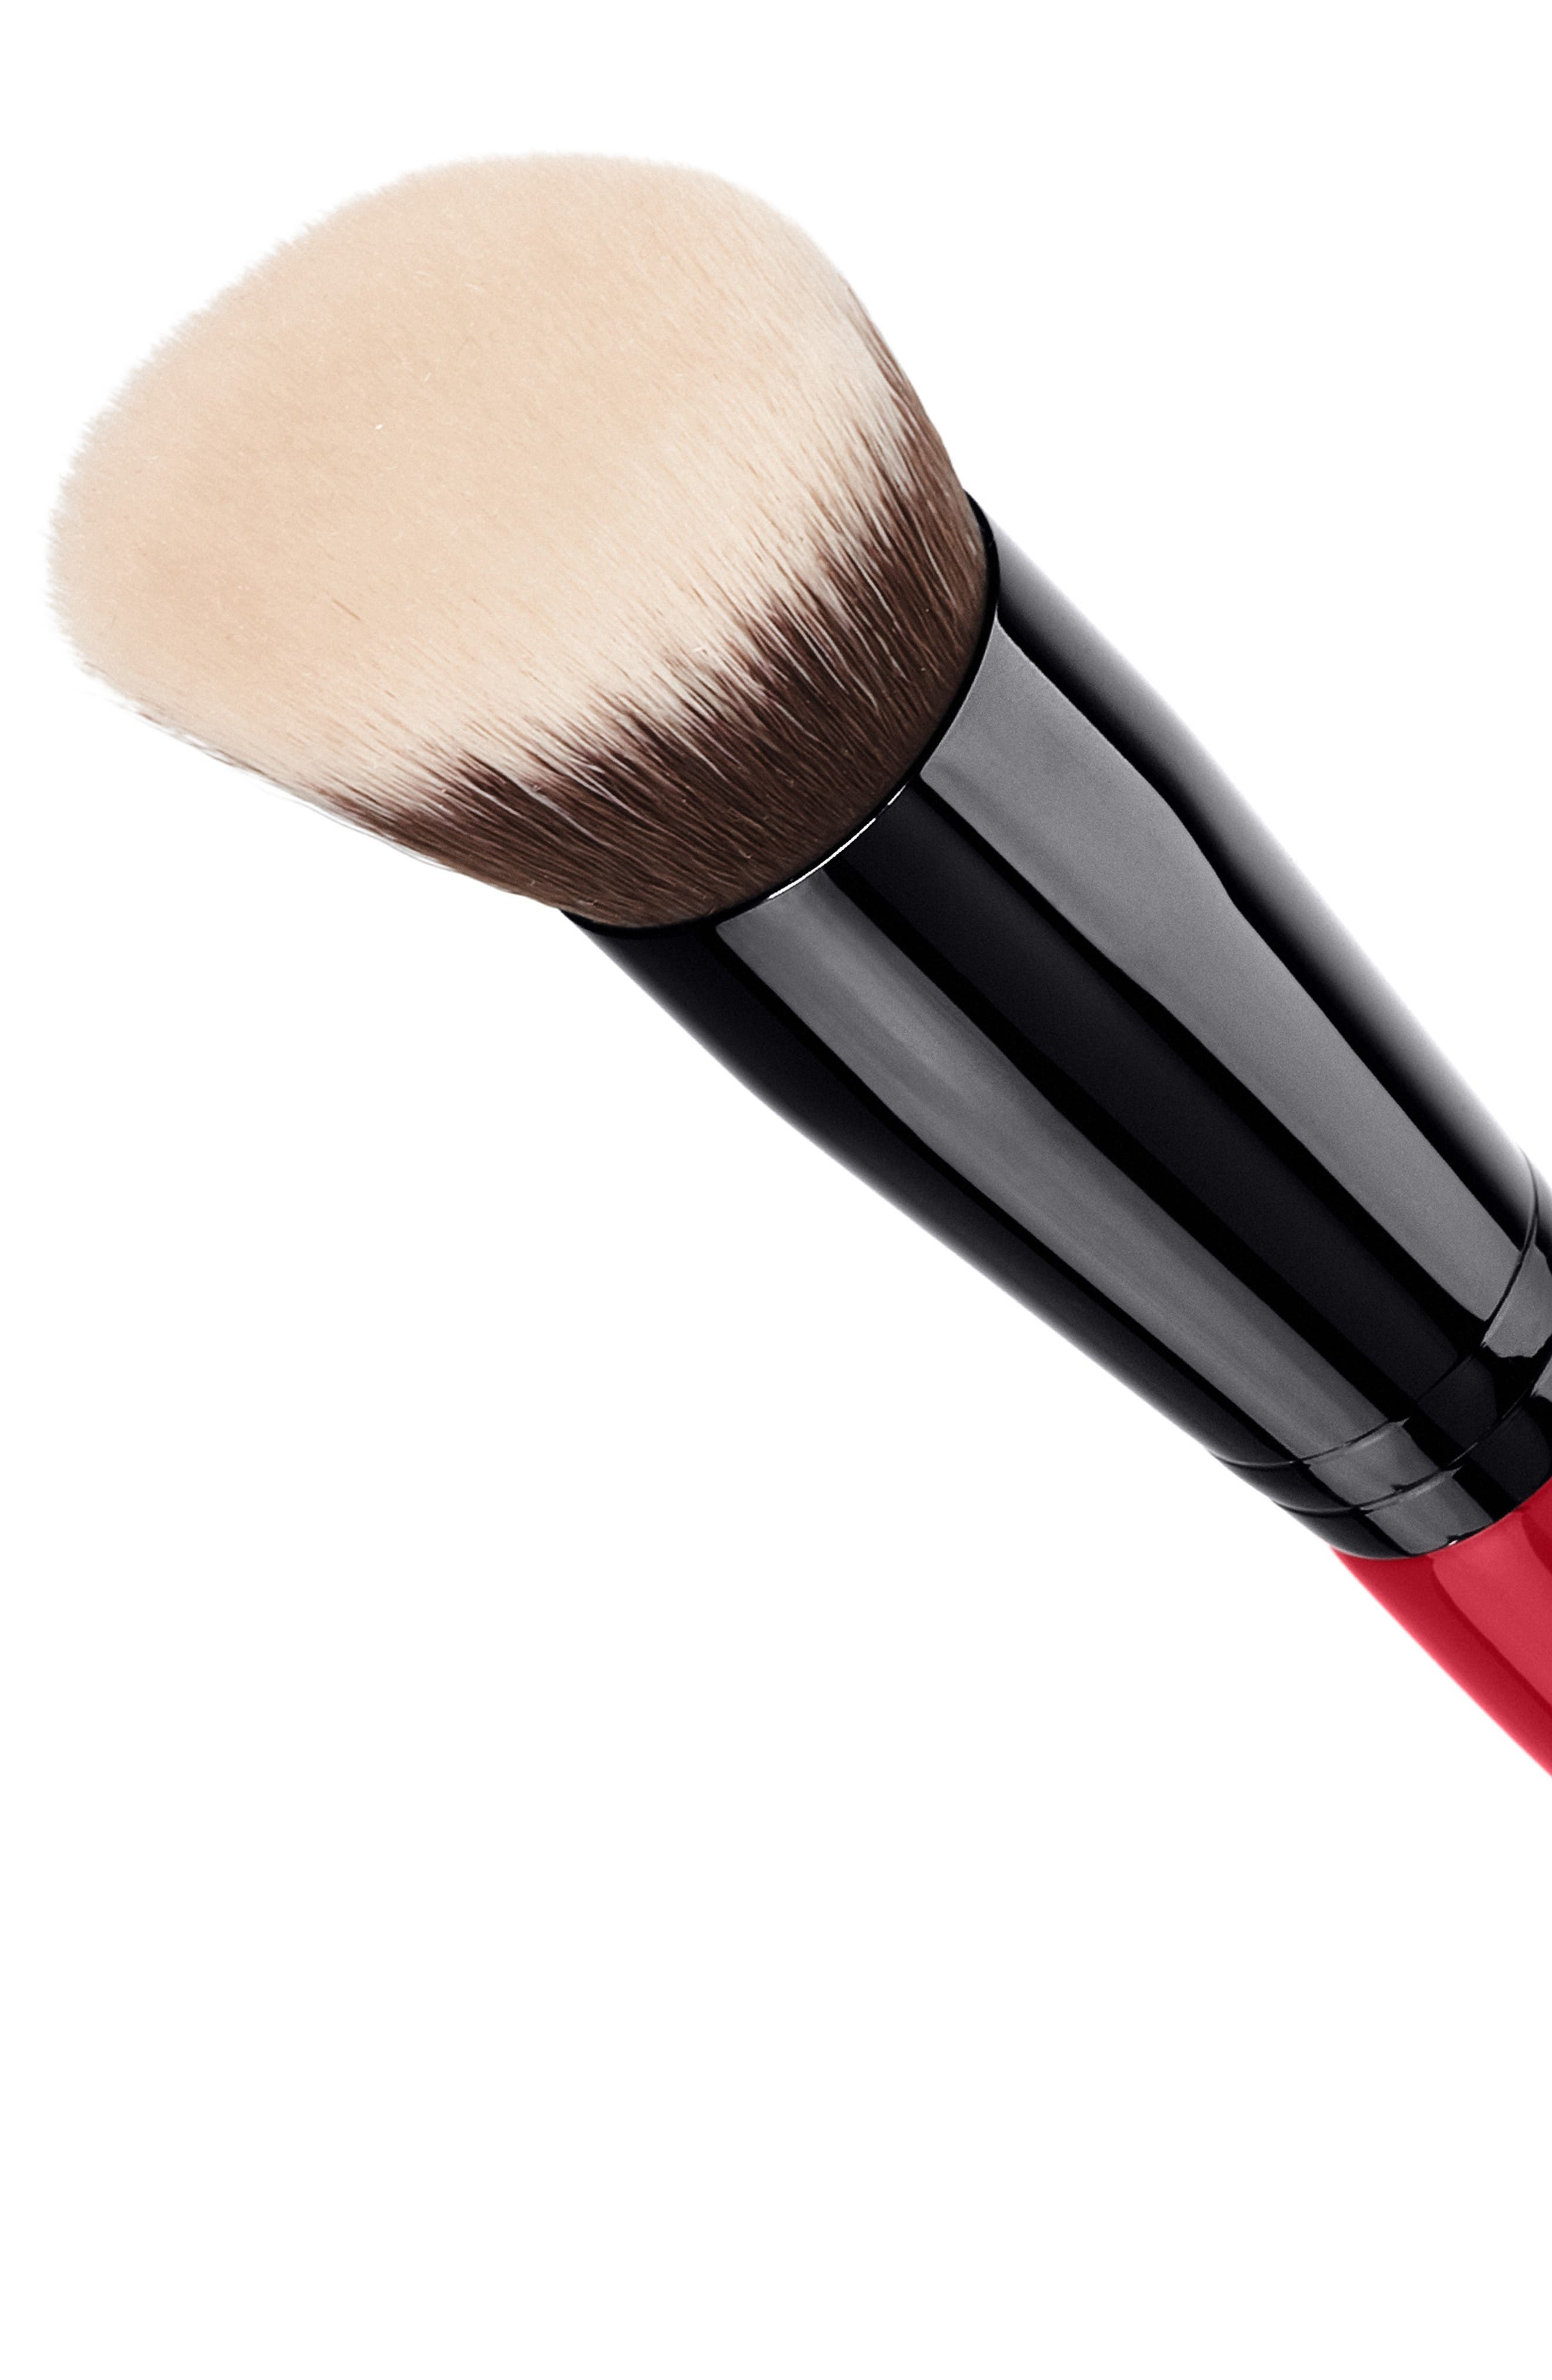 Full Coverage Foundation Brush,                             Alternate thumbnail 2, color,                             NO COLOR